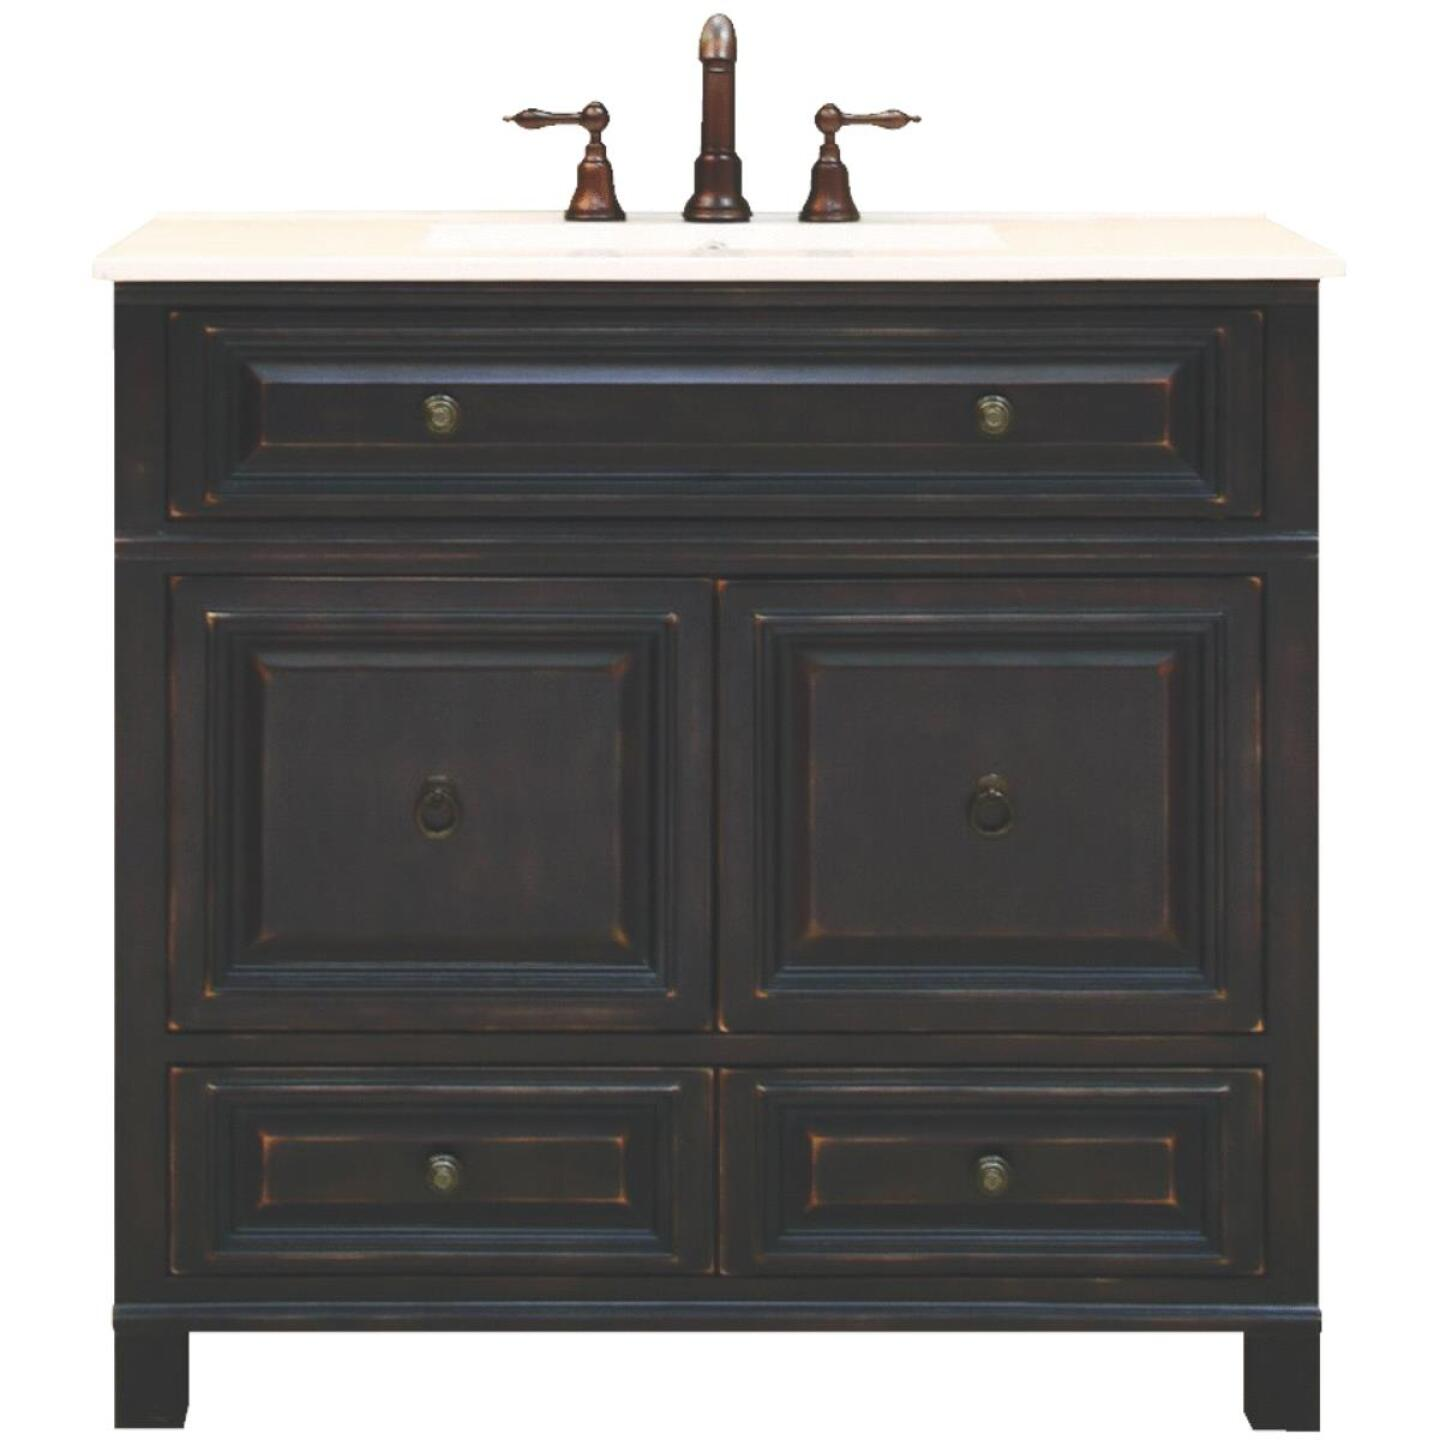 Sunny Wood Barton Hill Black Onyx 36 In. W x 34 In. H x 21 In. D Vanity Base, 2 Door/2 Drawer Image 1